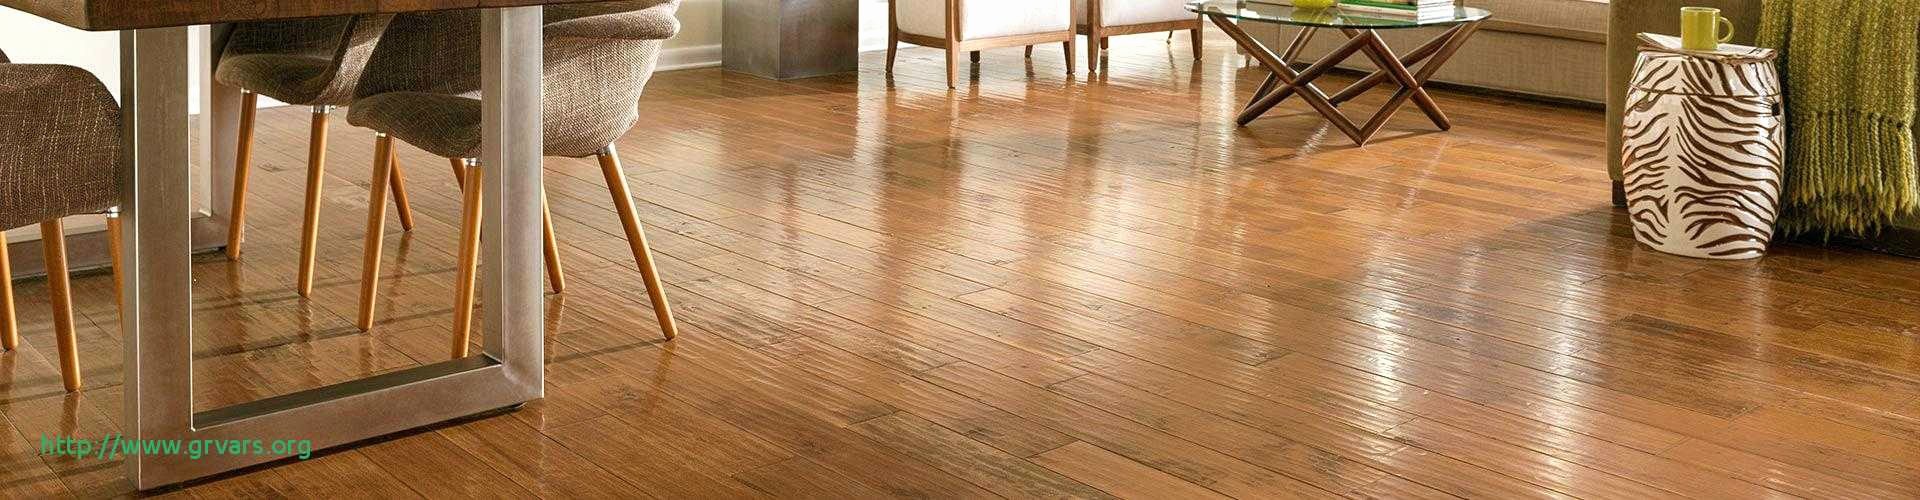 how much does hardwood flooring cost of lowes laminate flooring installation cost fresh 49 elegant does throughout 37 luxury photograph of lowes laminate flooring installation cost lowes laminate flooring installation cost unique how